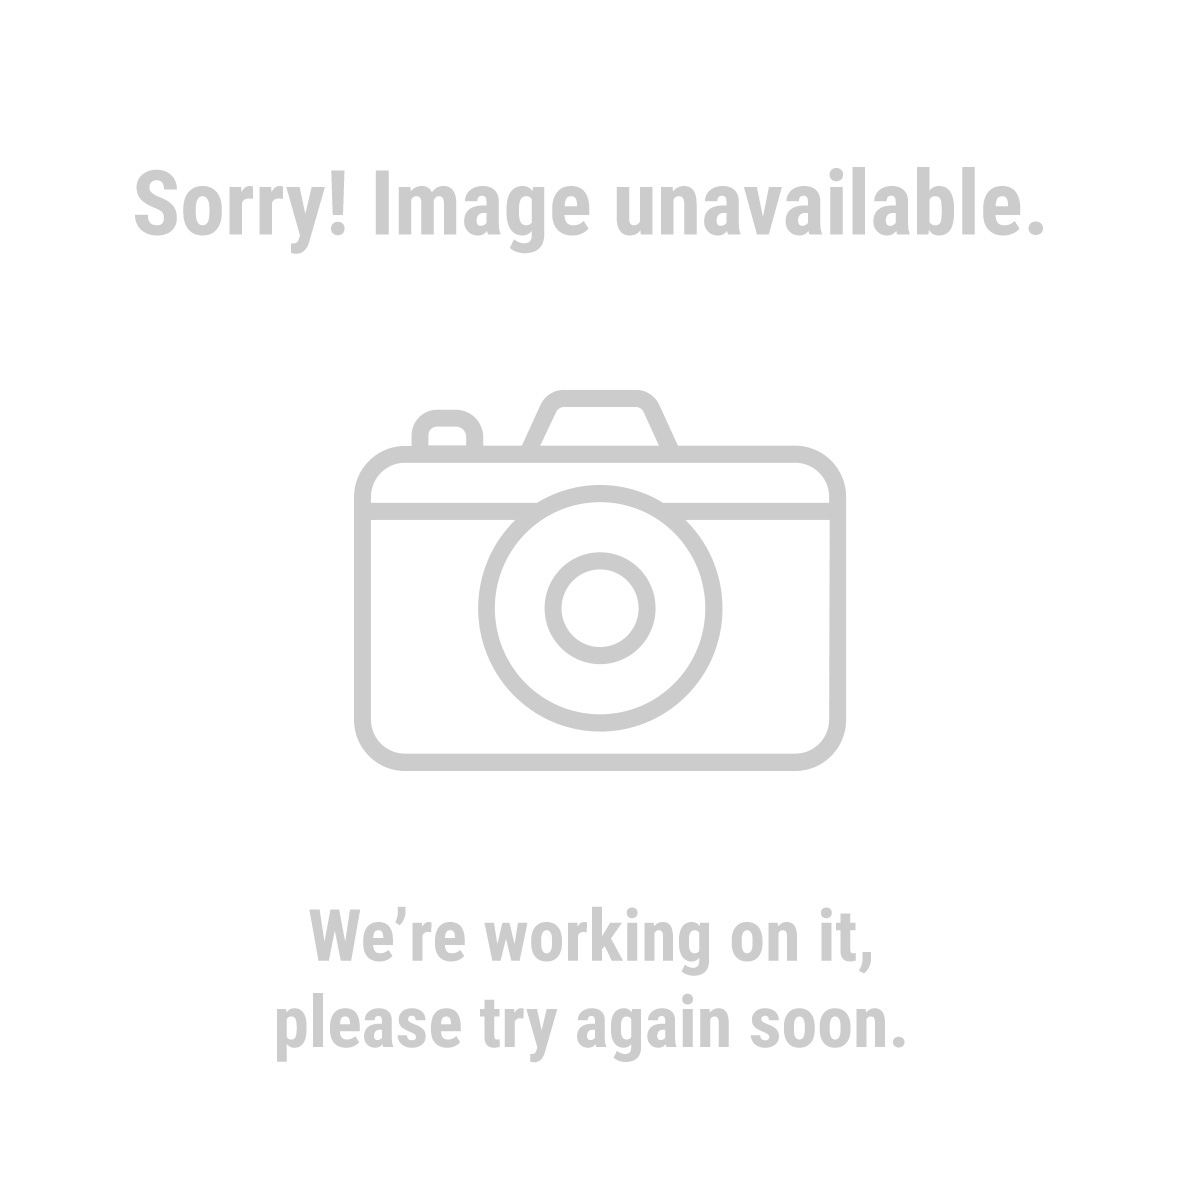 Pittsburgh 69075 7 Piece Electrician's Screwdriver Set